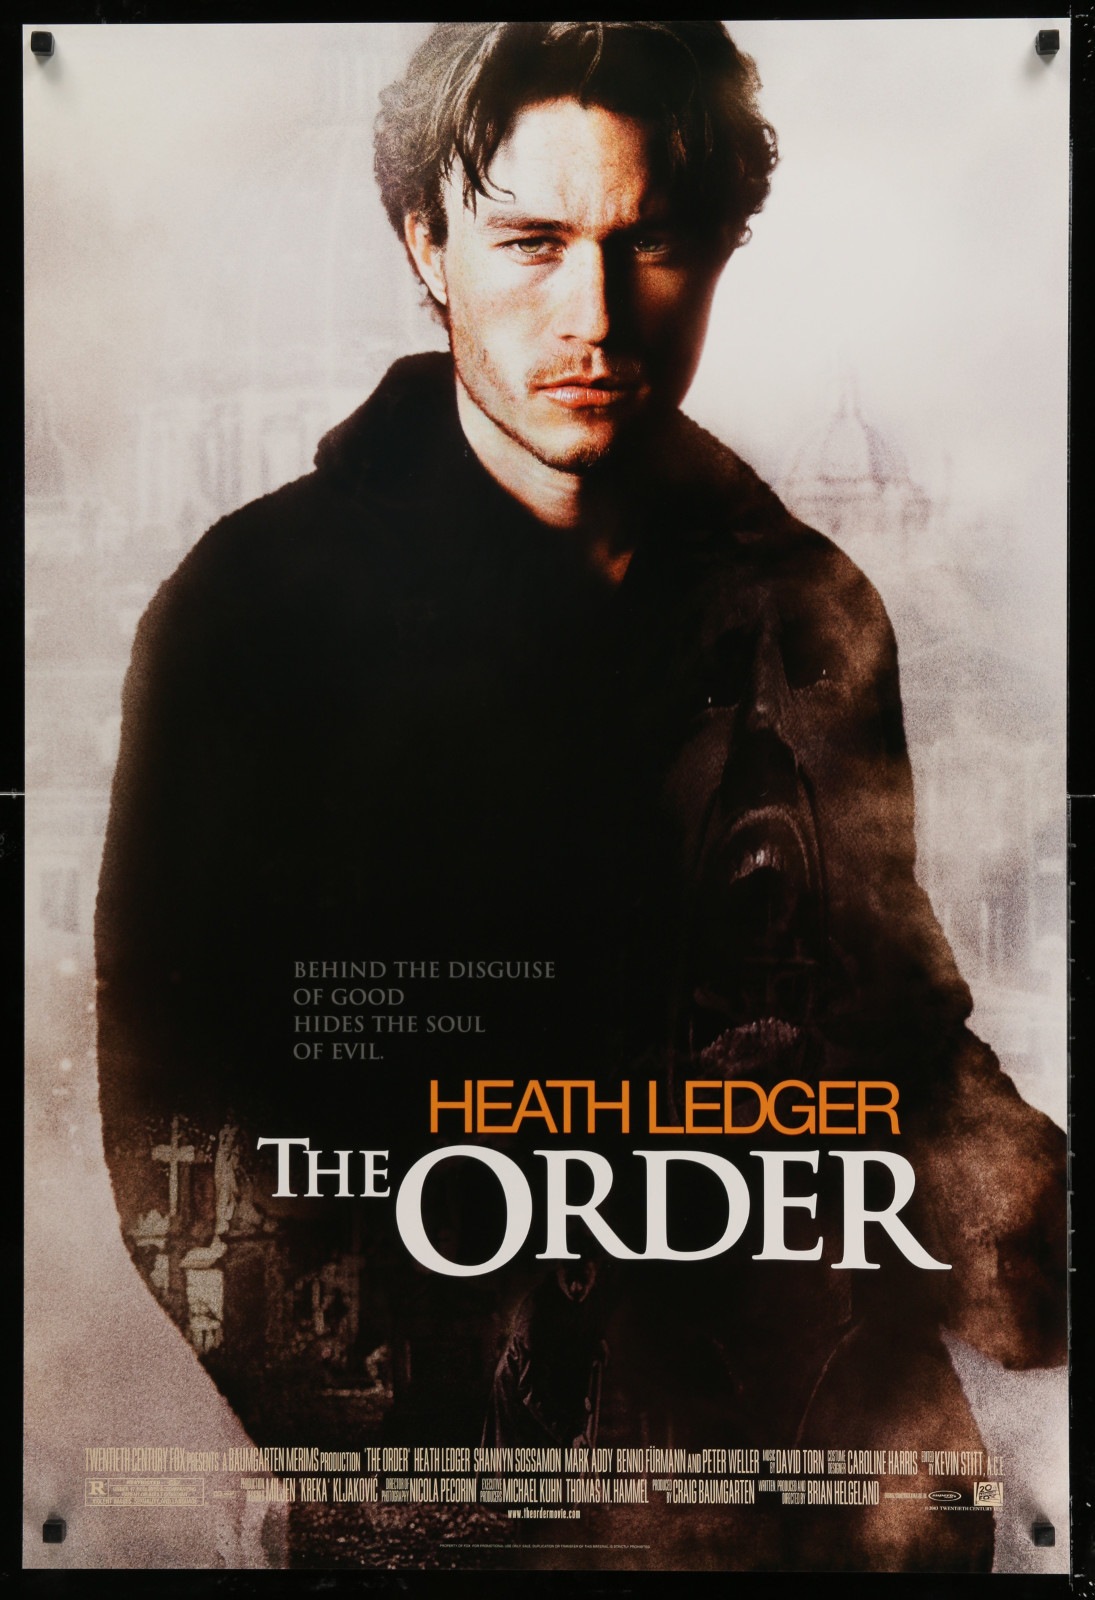 The Order 2A391 A Part Of A Lot 24 Unfolded Double-Sided 27X40 One-Sheets '90S-00S Great Movie Images!